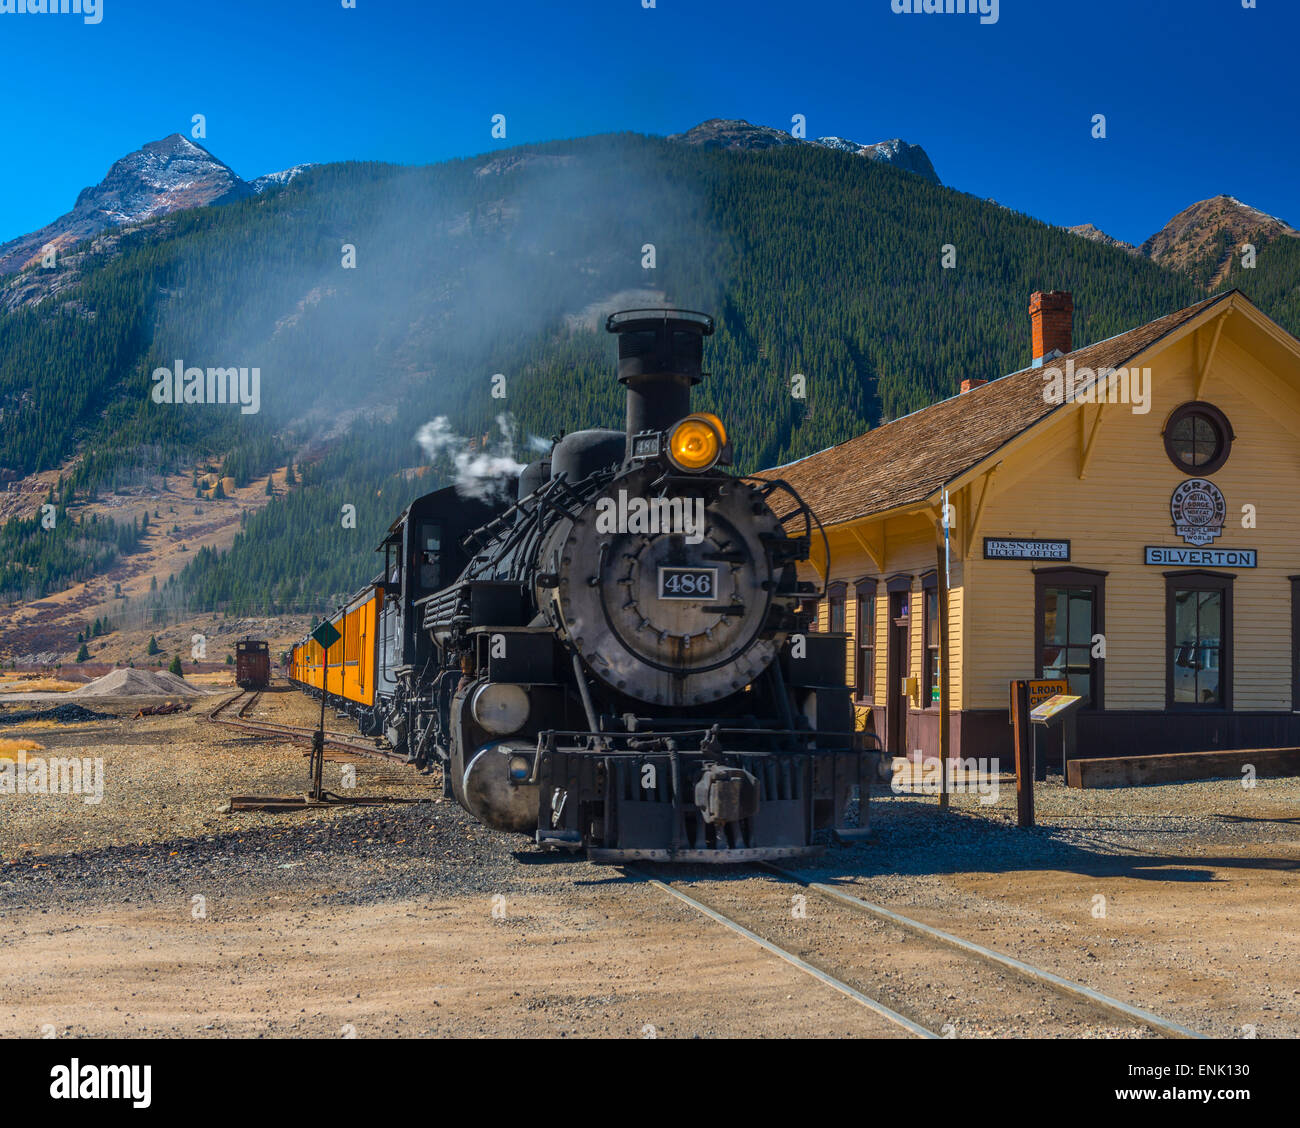 Railway Station for Durango and Silverton Narrow Gauge Railroad, Silverton, Colorado, United States of America, - Stock Image